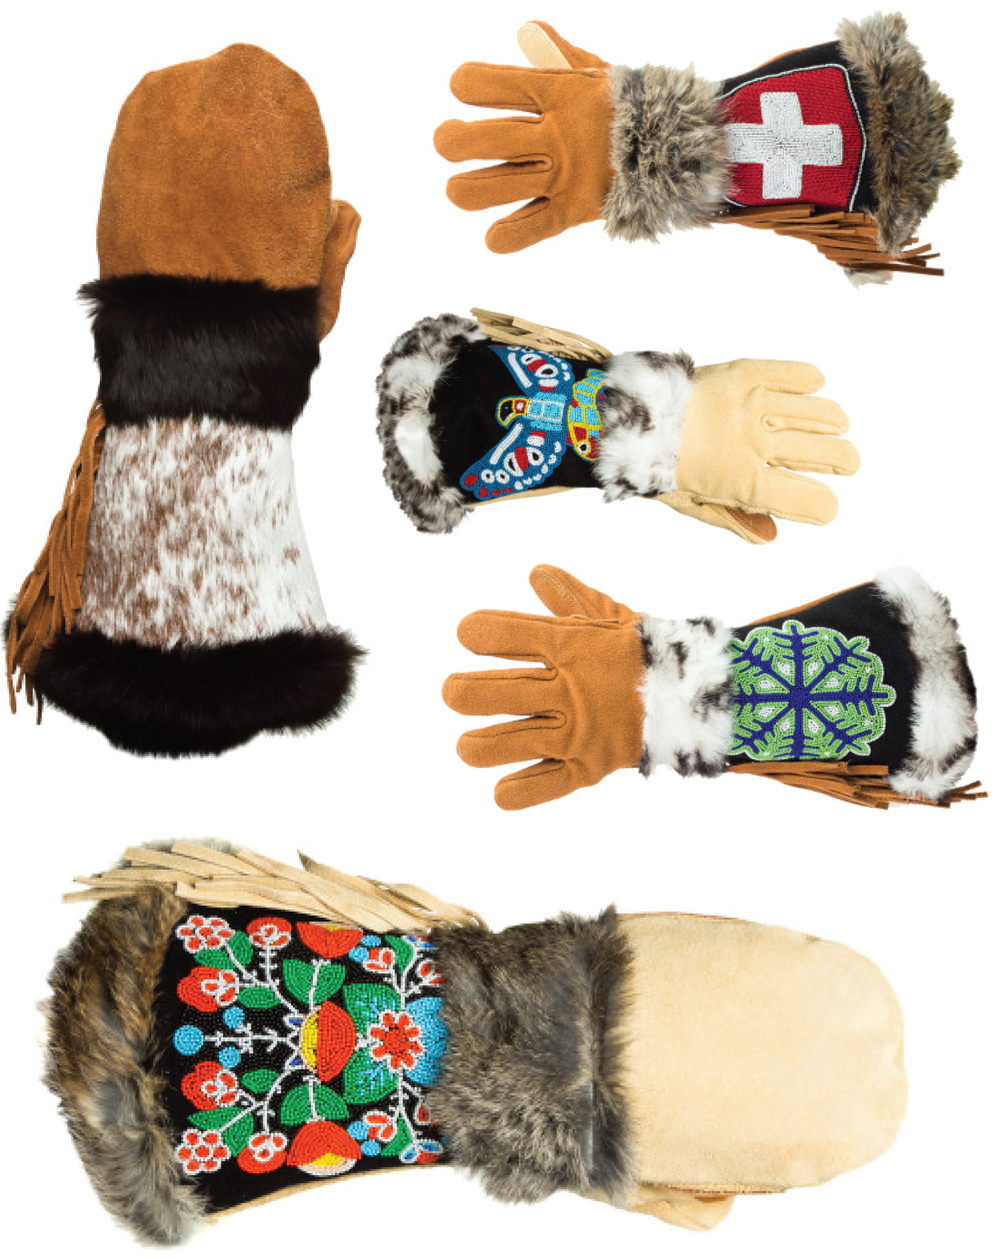 outstyled-astis-mittens